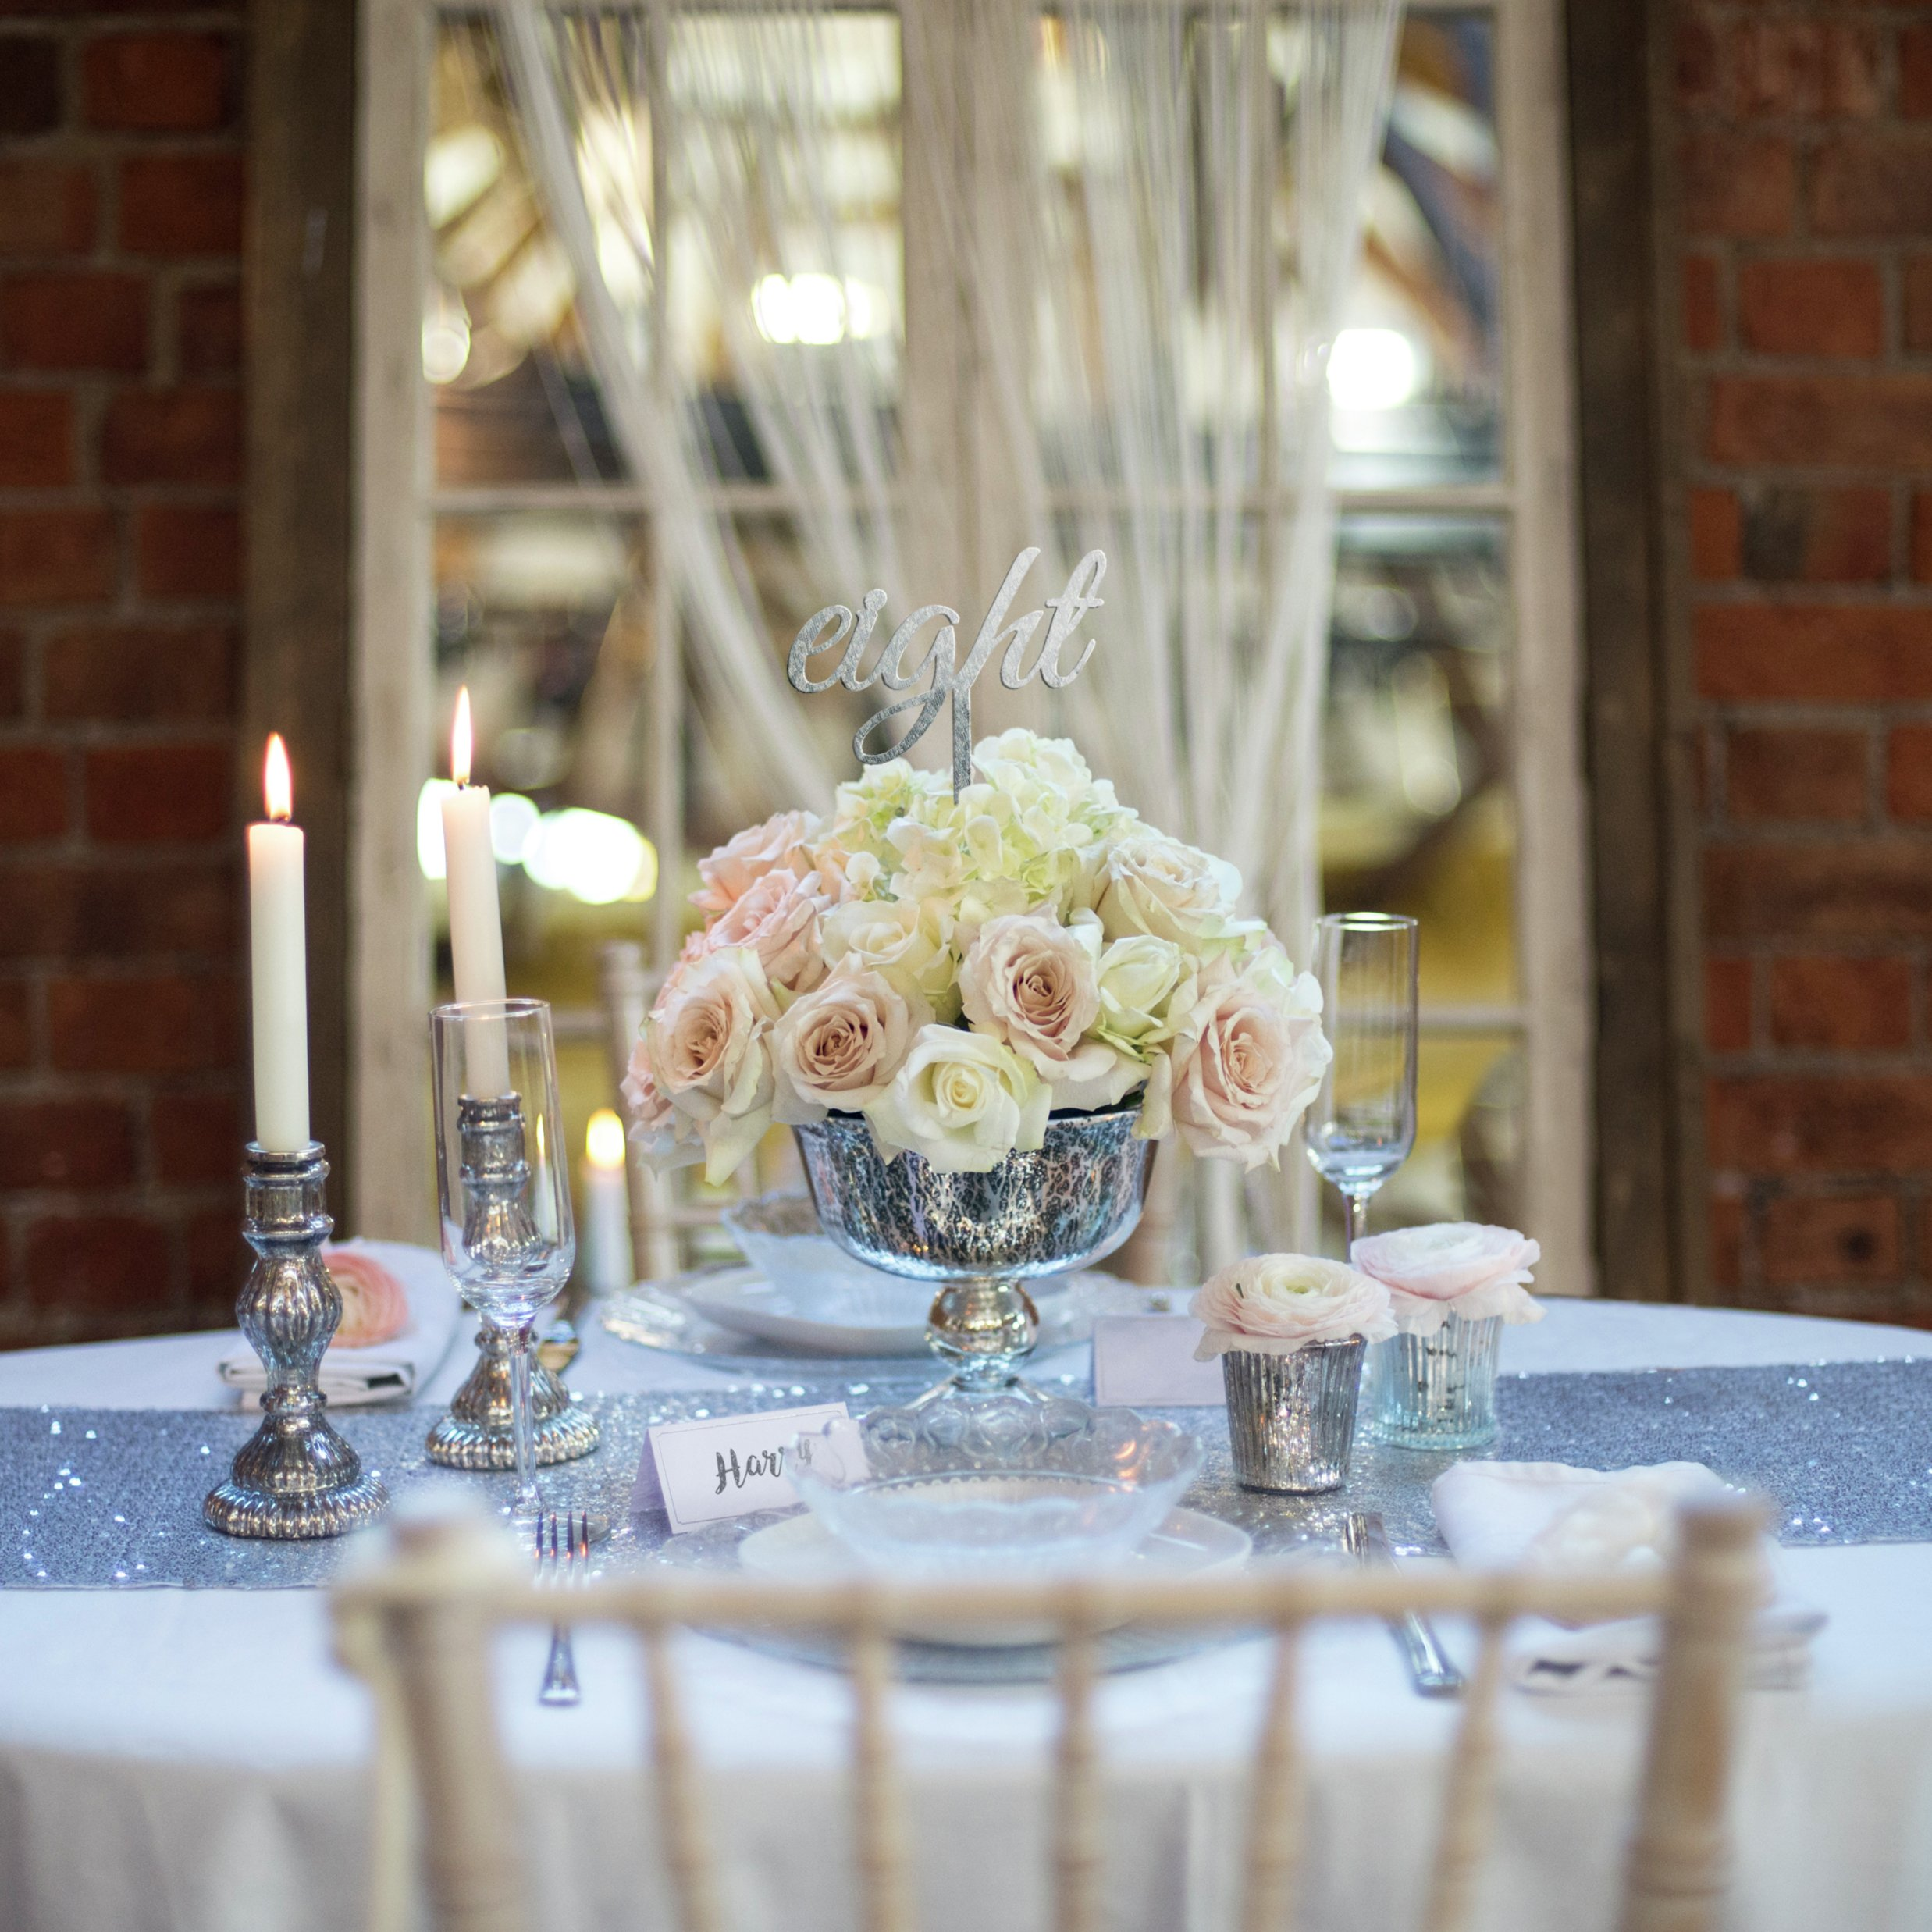 Image of Silver Glamour Luxury Wedding Table Centerpiece Set